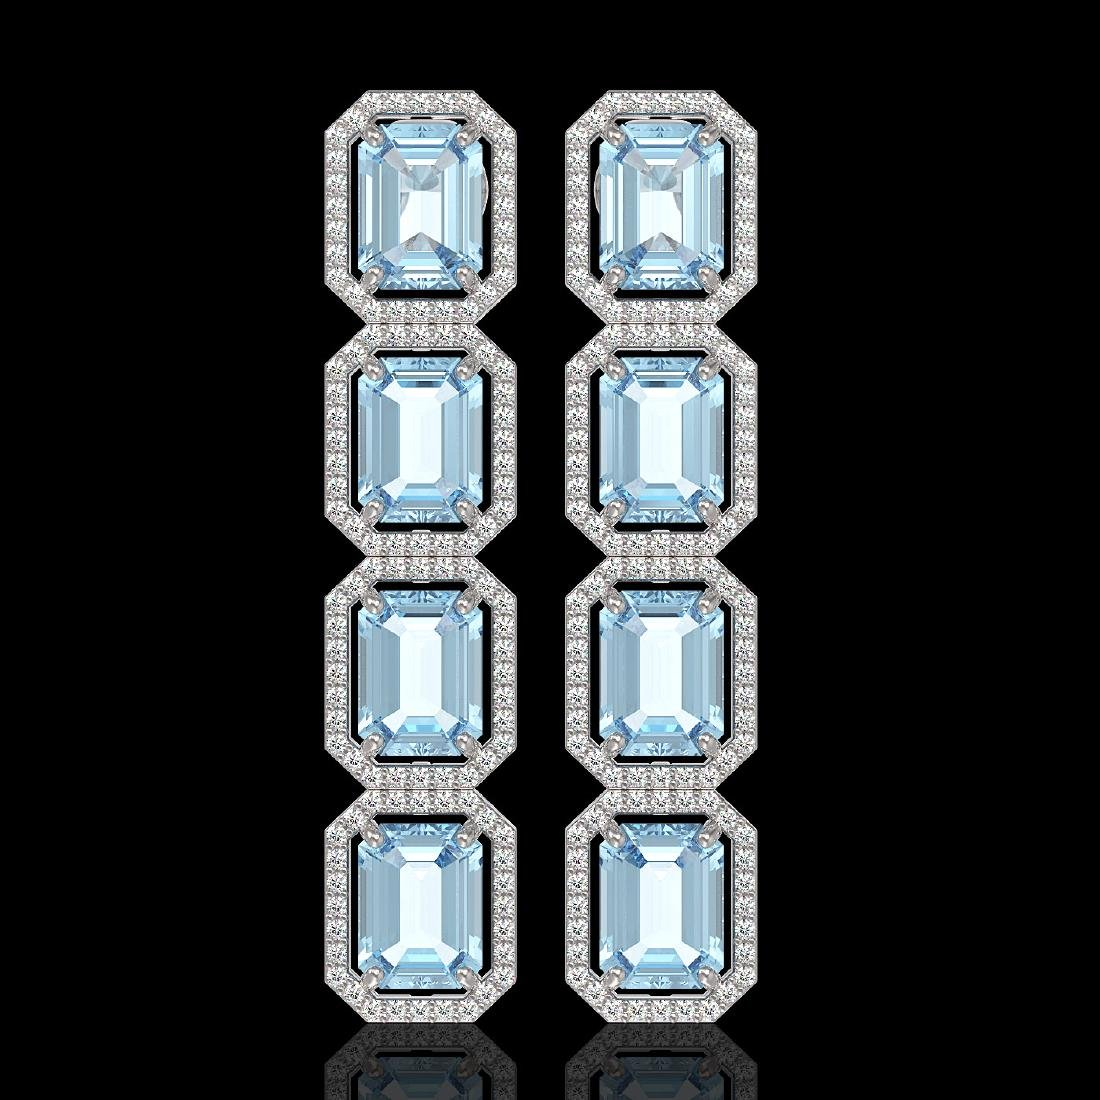 19.49 CTW Aquamarine & Diamond Halo Earrings 10K White